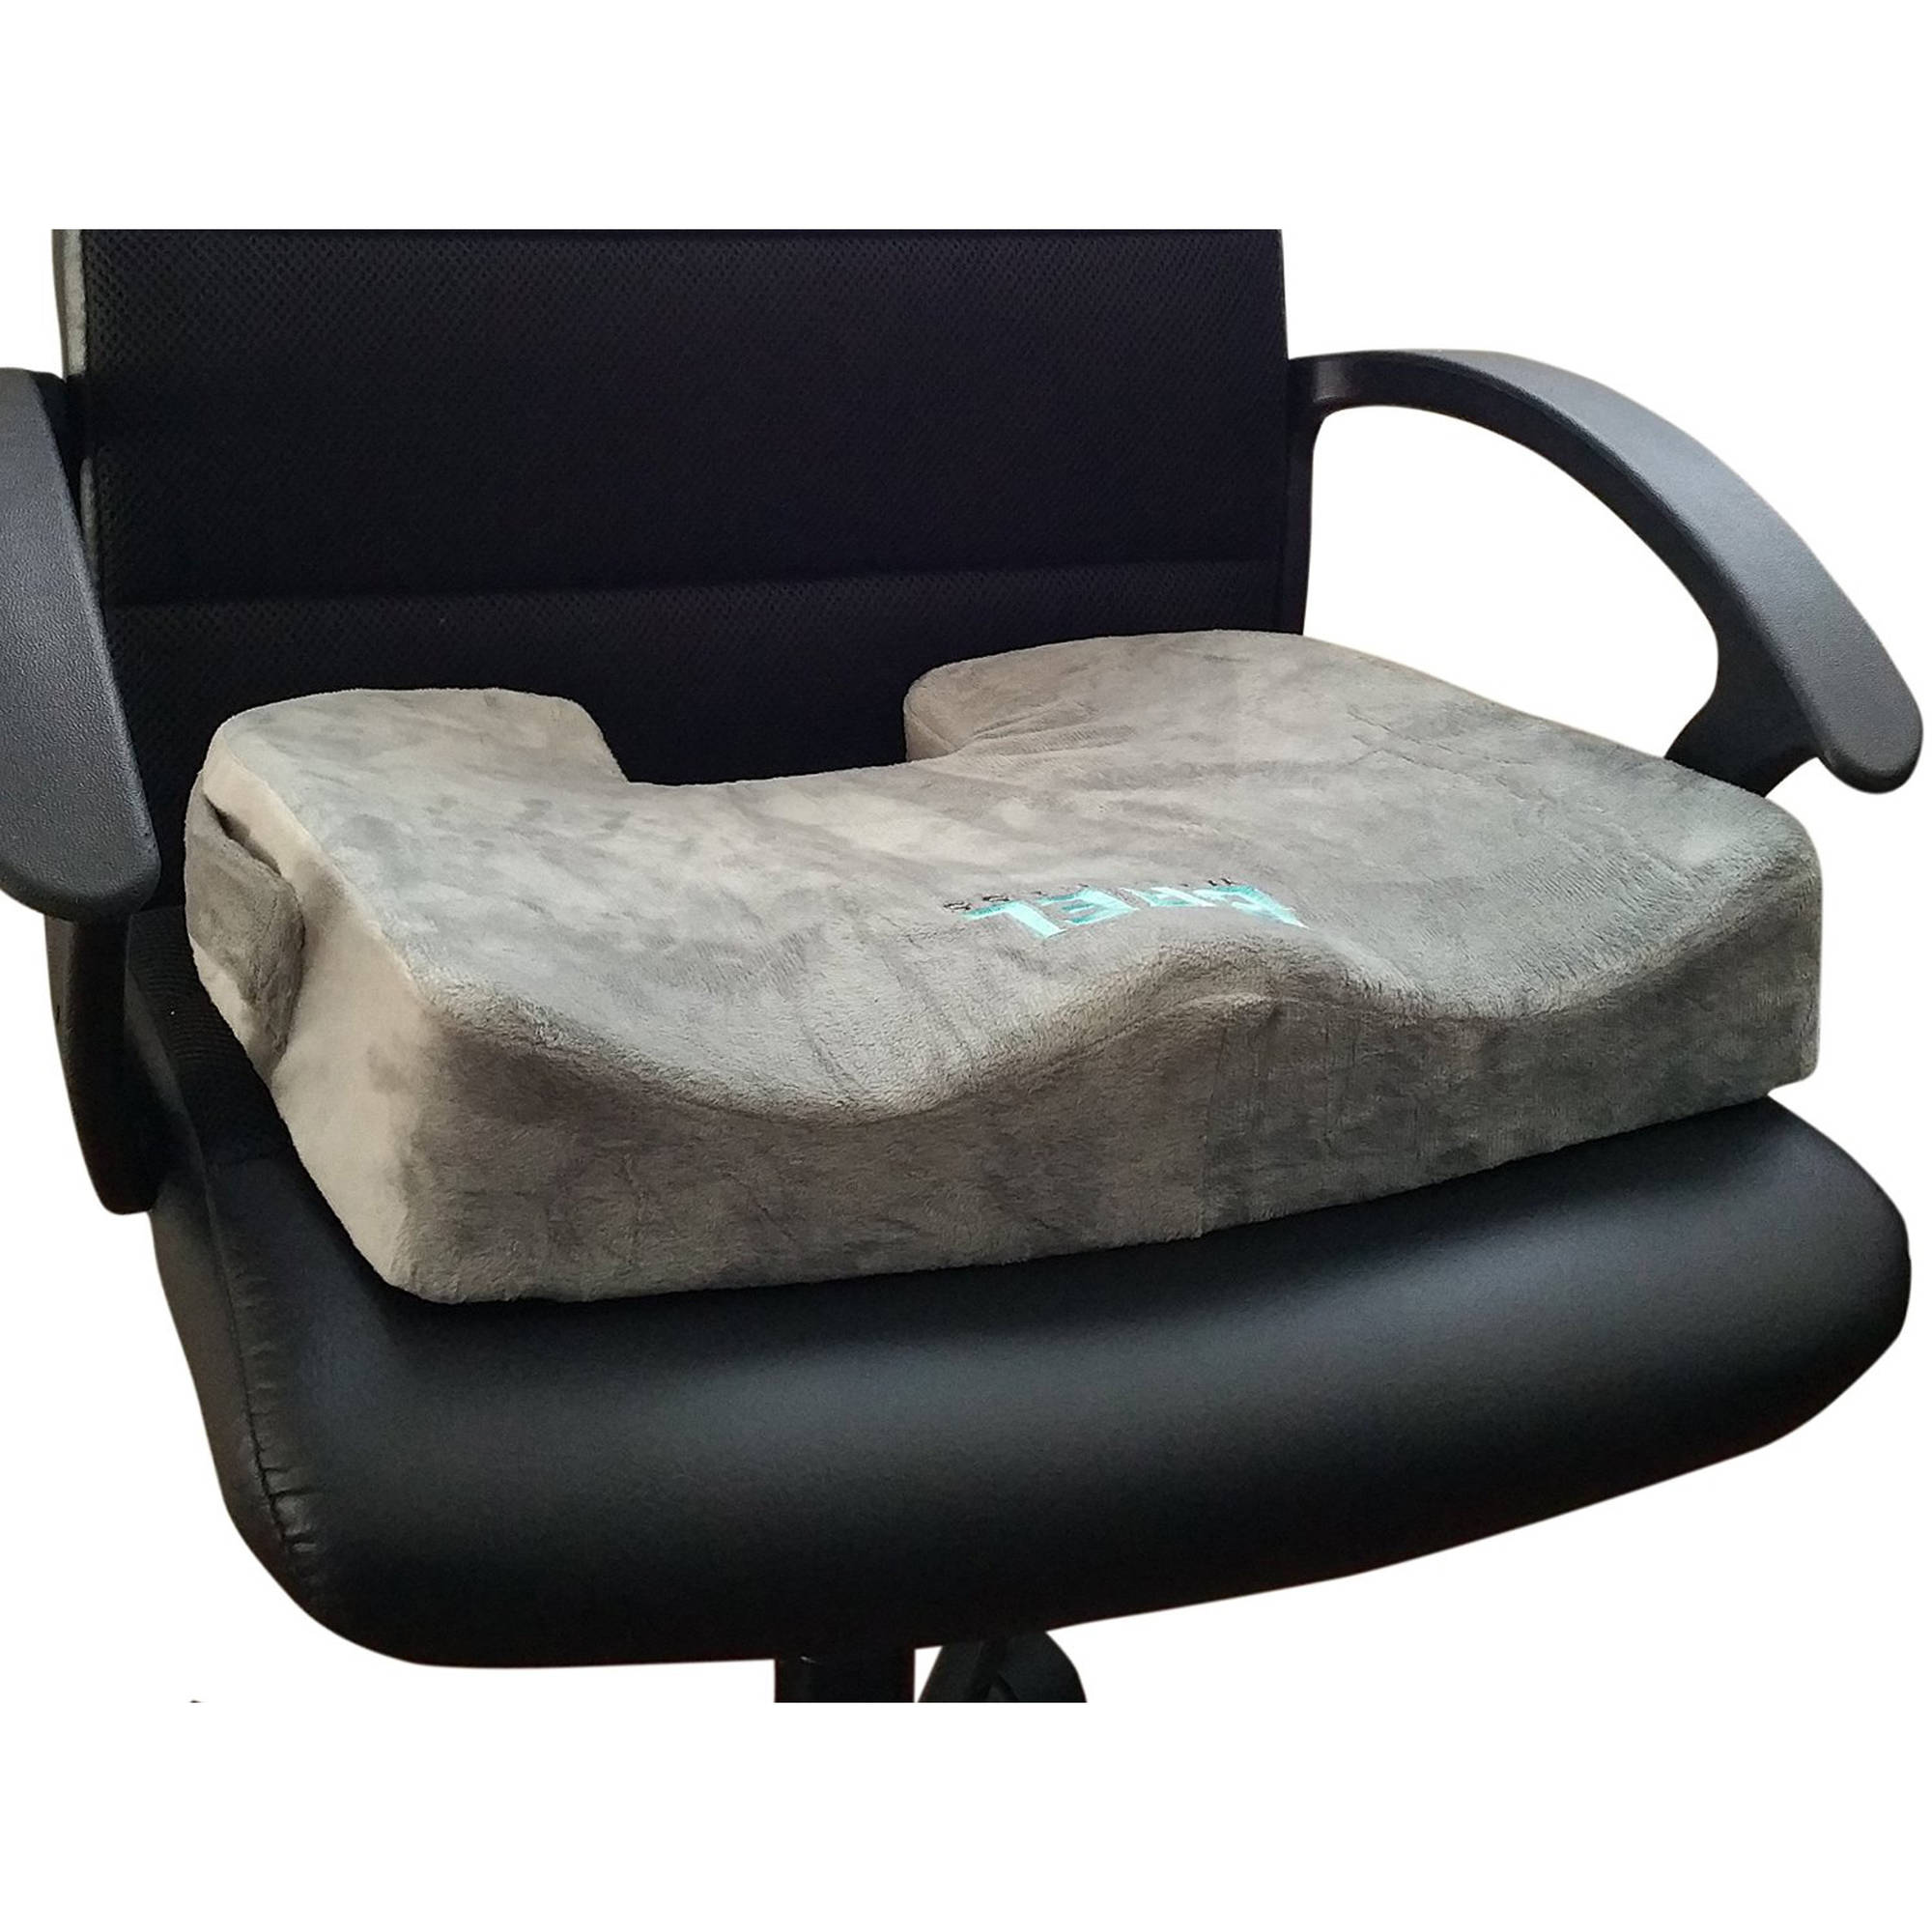 Bael Wellness Posture Support Seat Cushion